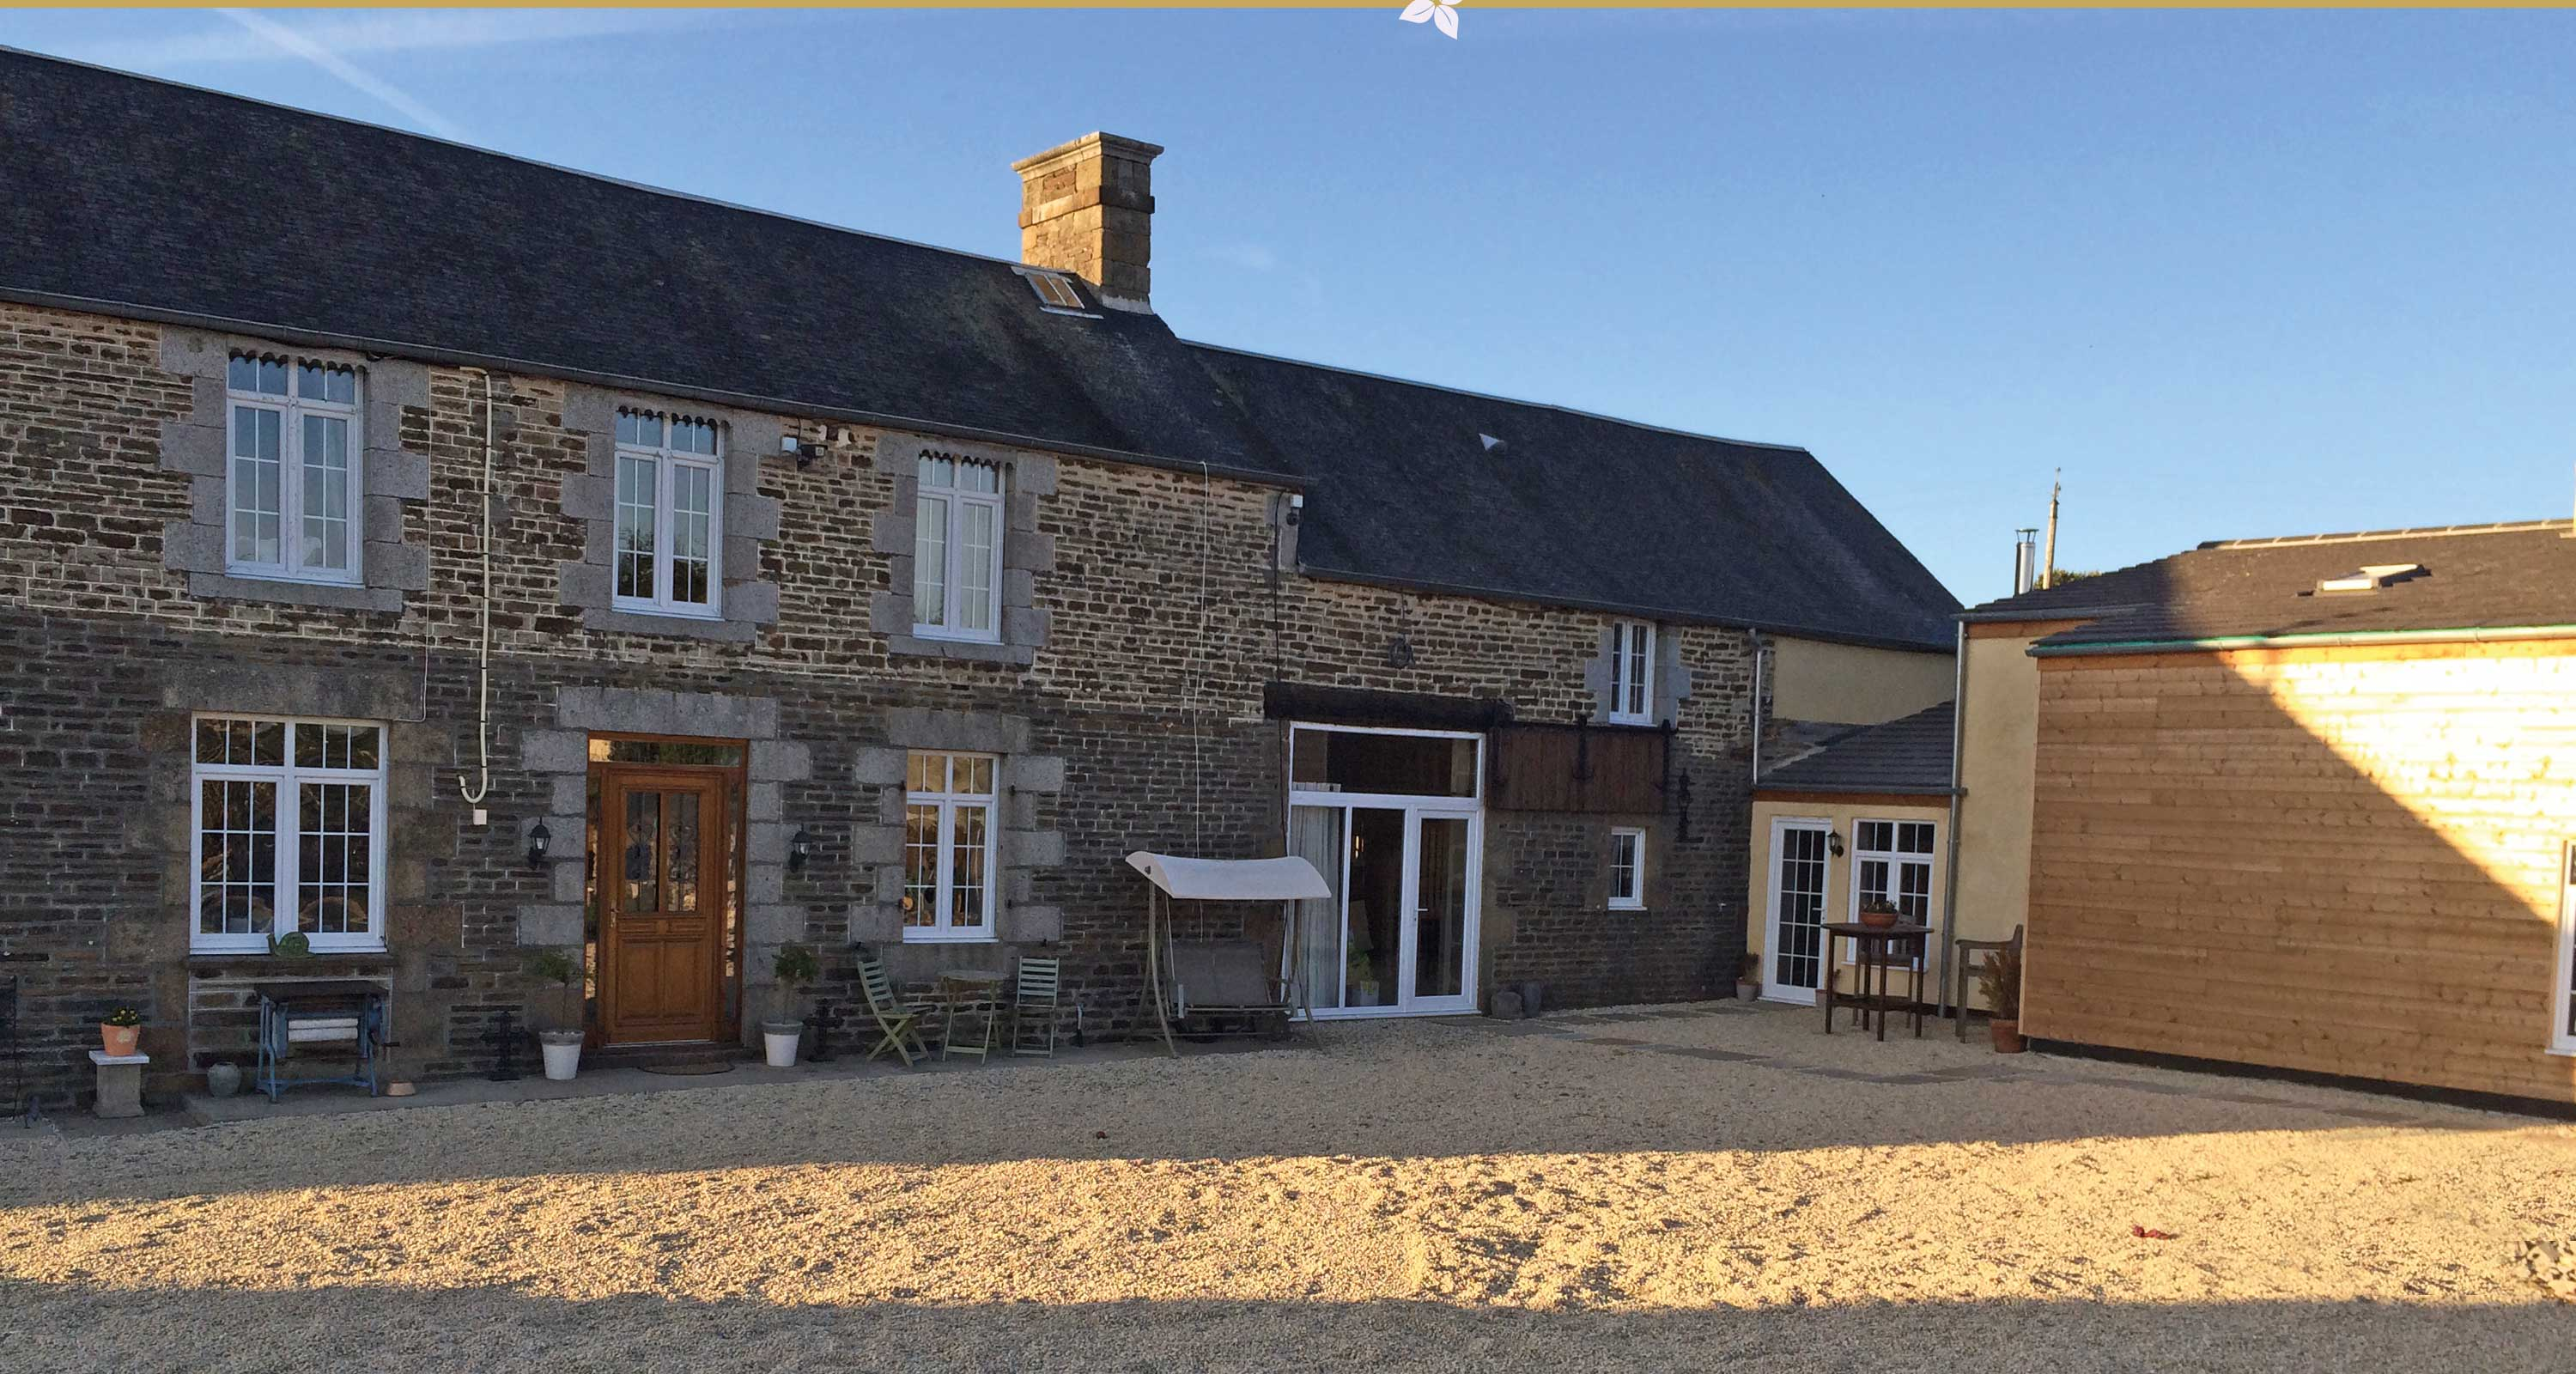 2 and 3 bedroom holiday cottages in Normandy France